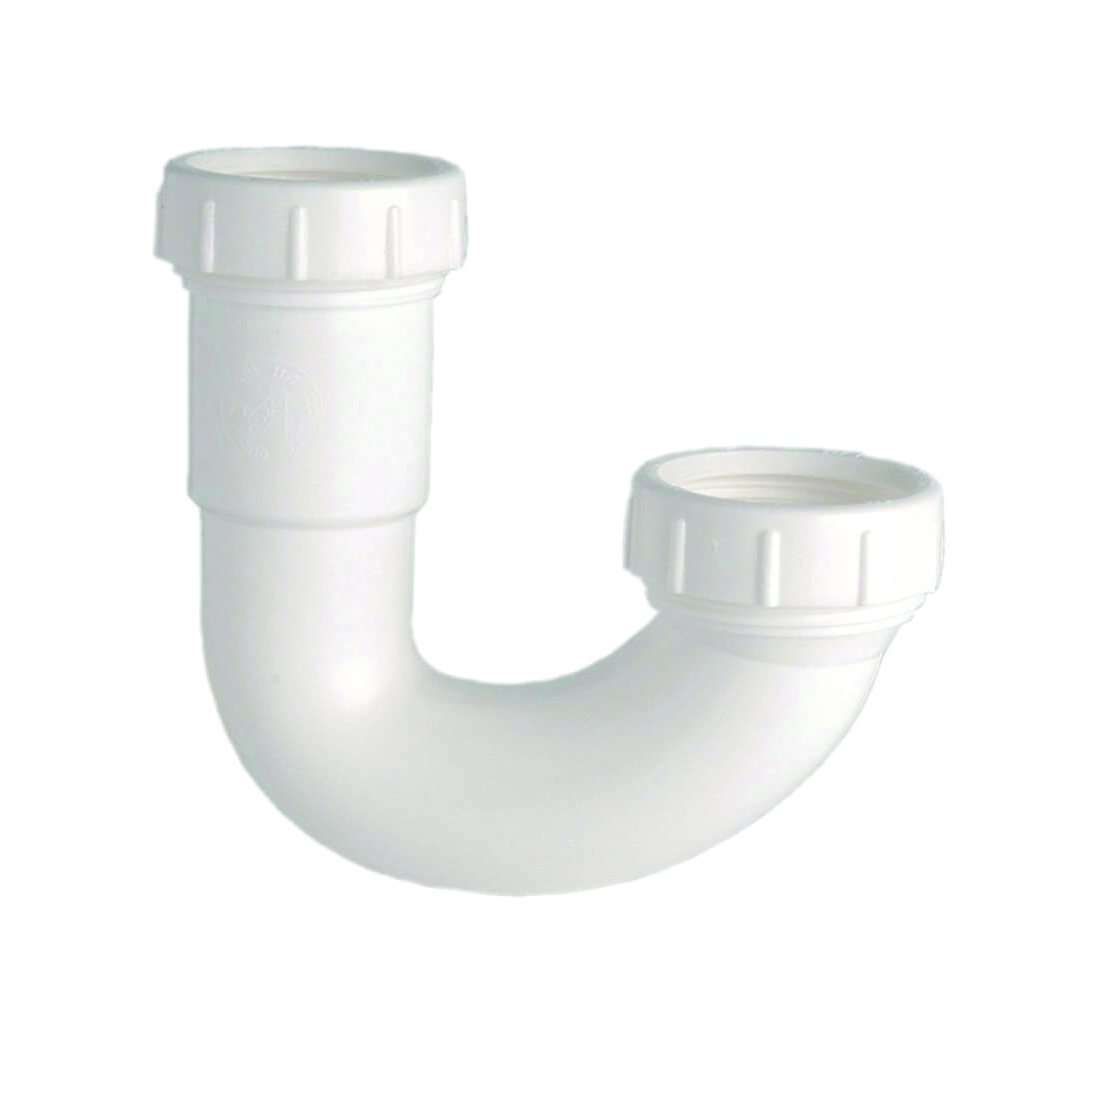 Picture of Danco 94006 J-Bend Trap, 1-1/2 in, Slip Joint, Plastic, White